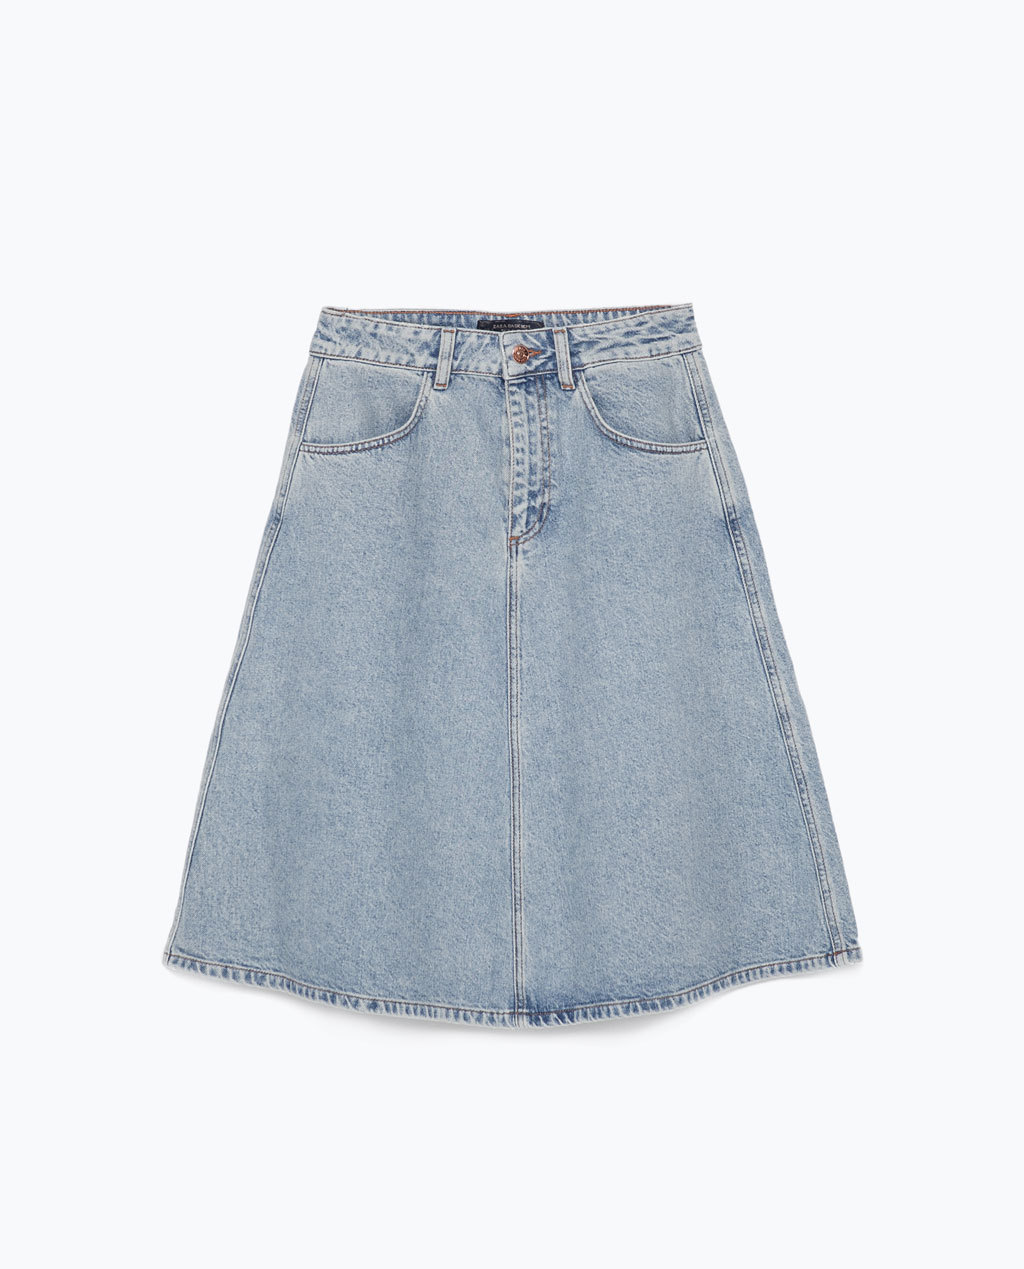 Vintage Style Denim Skirt - pattern: plain; fit: loose/voluminous; waist: mid/regular rise; predominant colour: denim; occasions: casual, creative work; length: just above the knee; style: a-line; texture group: denim; pattern type: fabric; trends: alternative denim, seventies retro; season: s/s 2015; wardrobe: basic